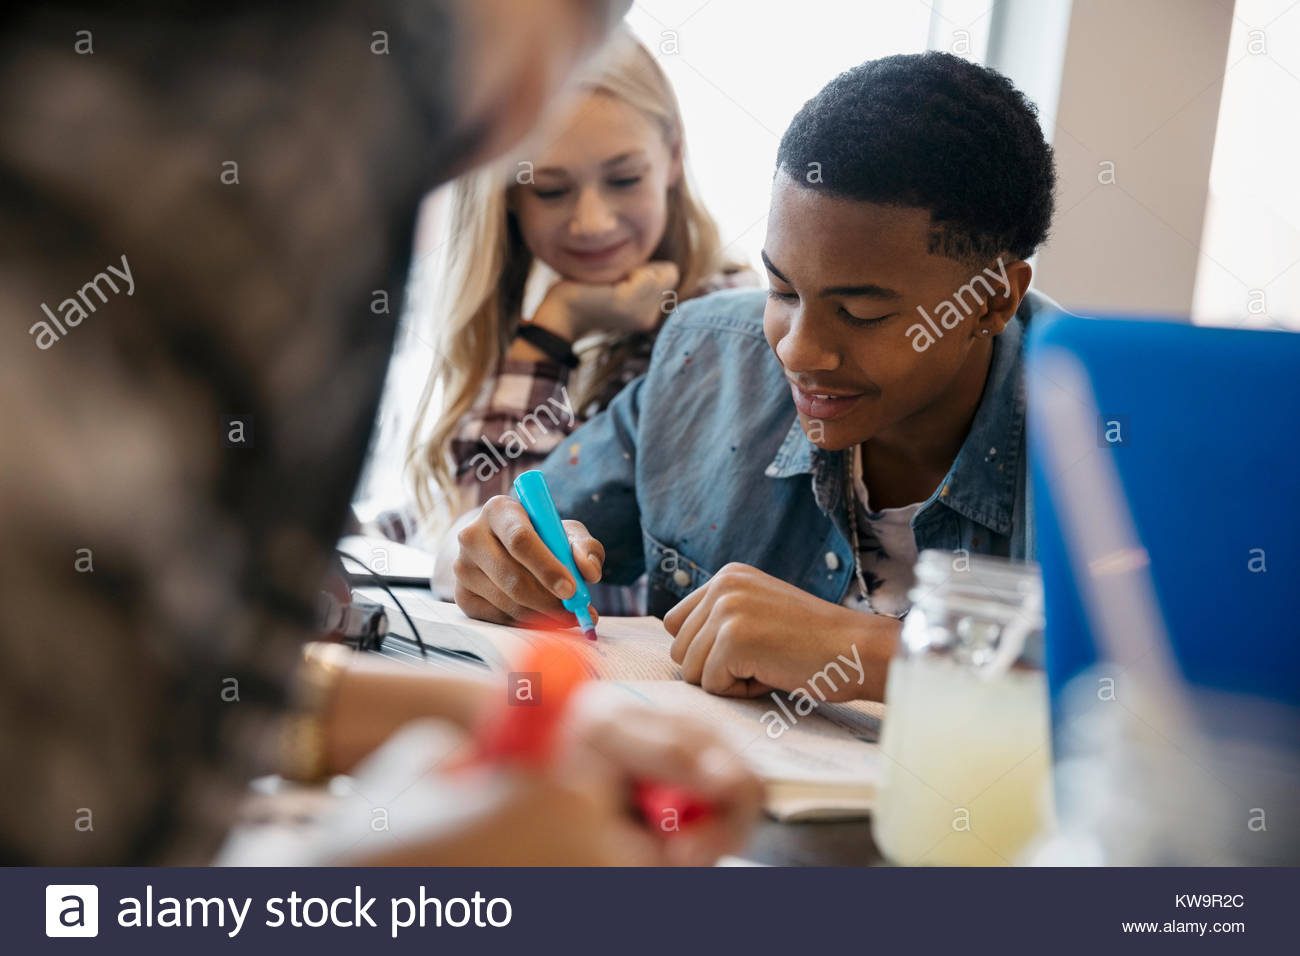 High school boy student studying,highlighting textbook in cafe - Stock Image